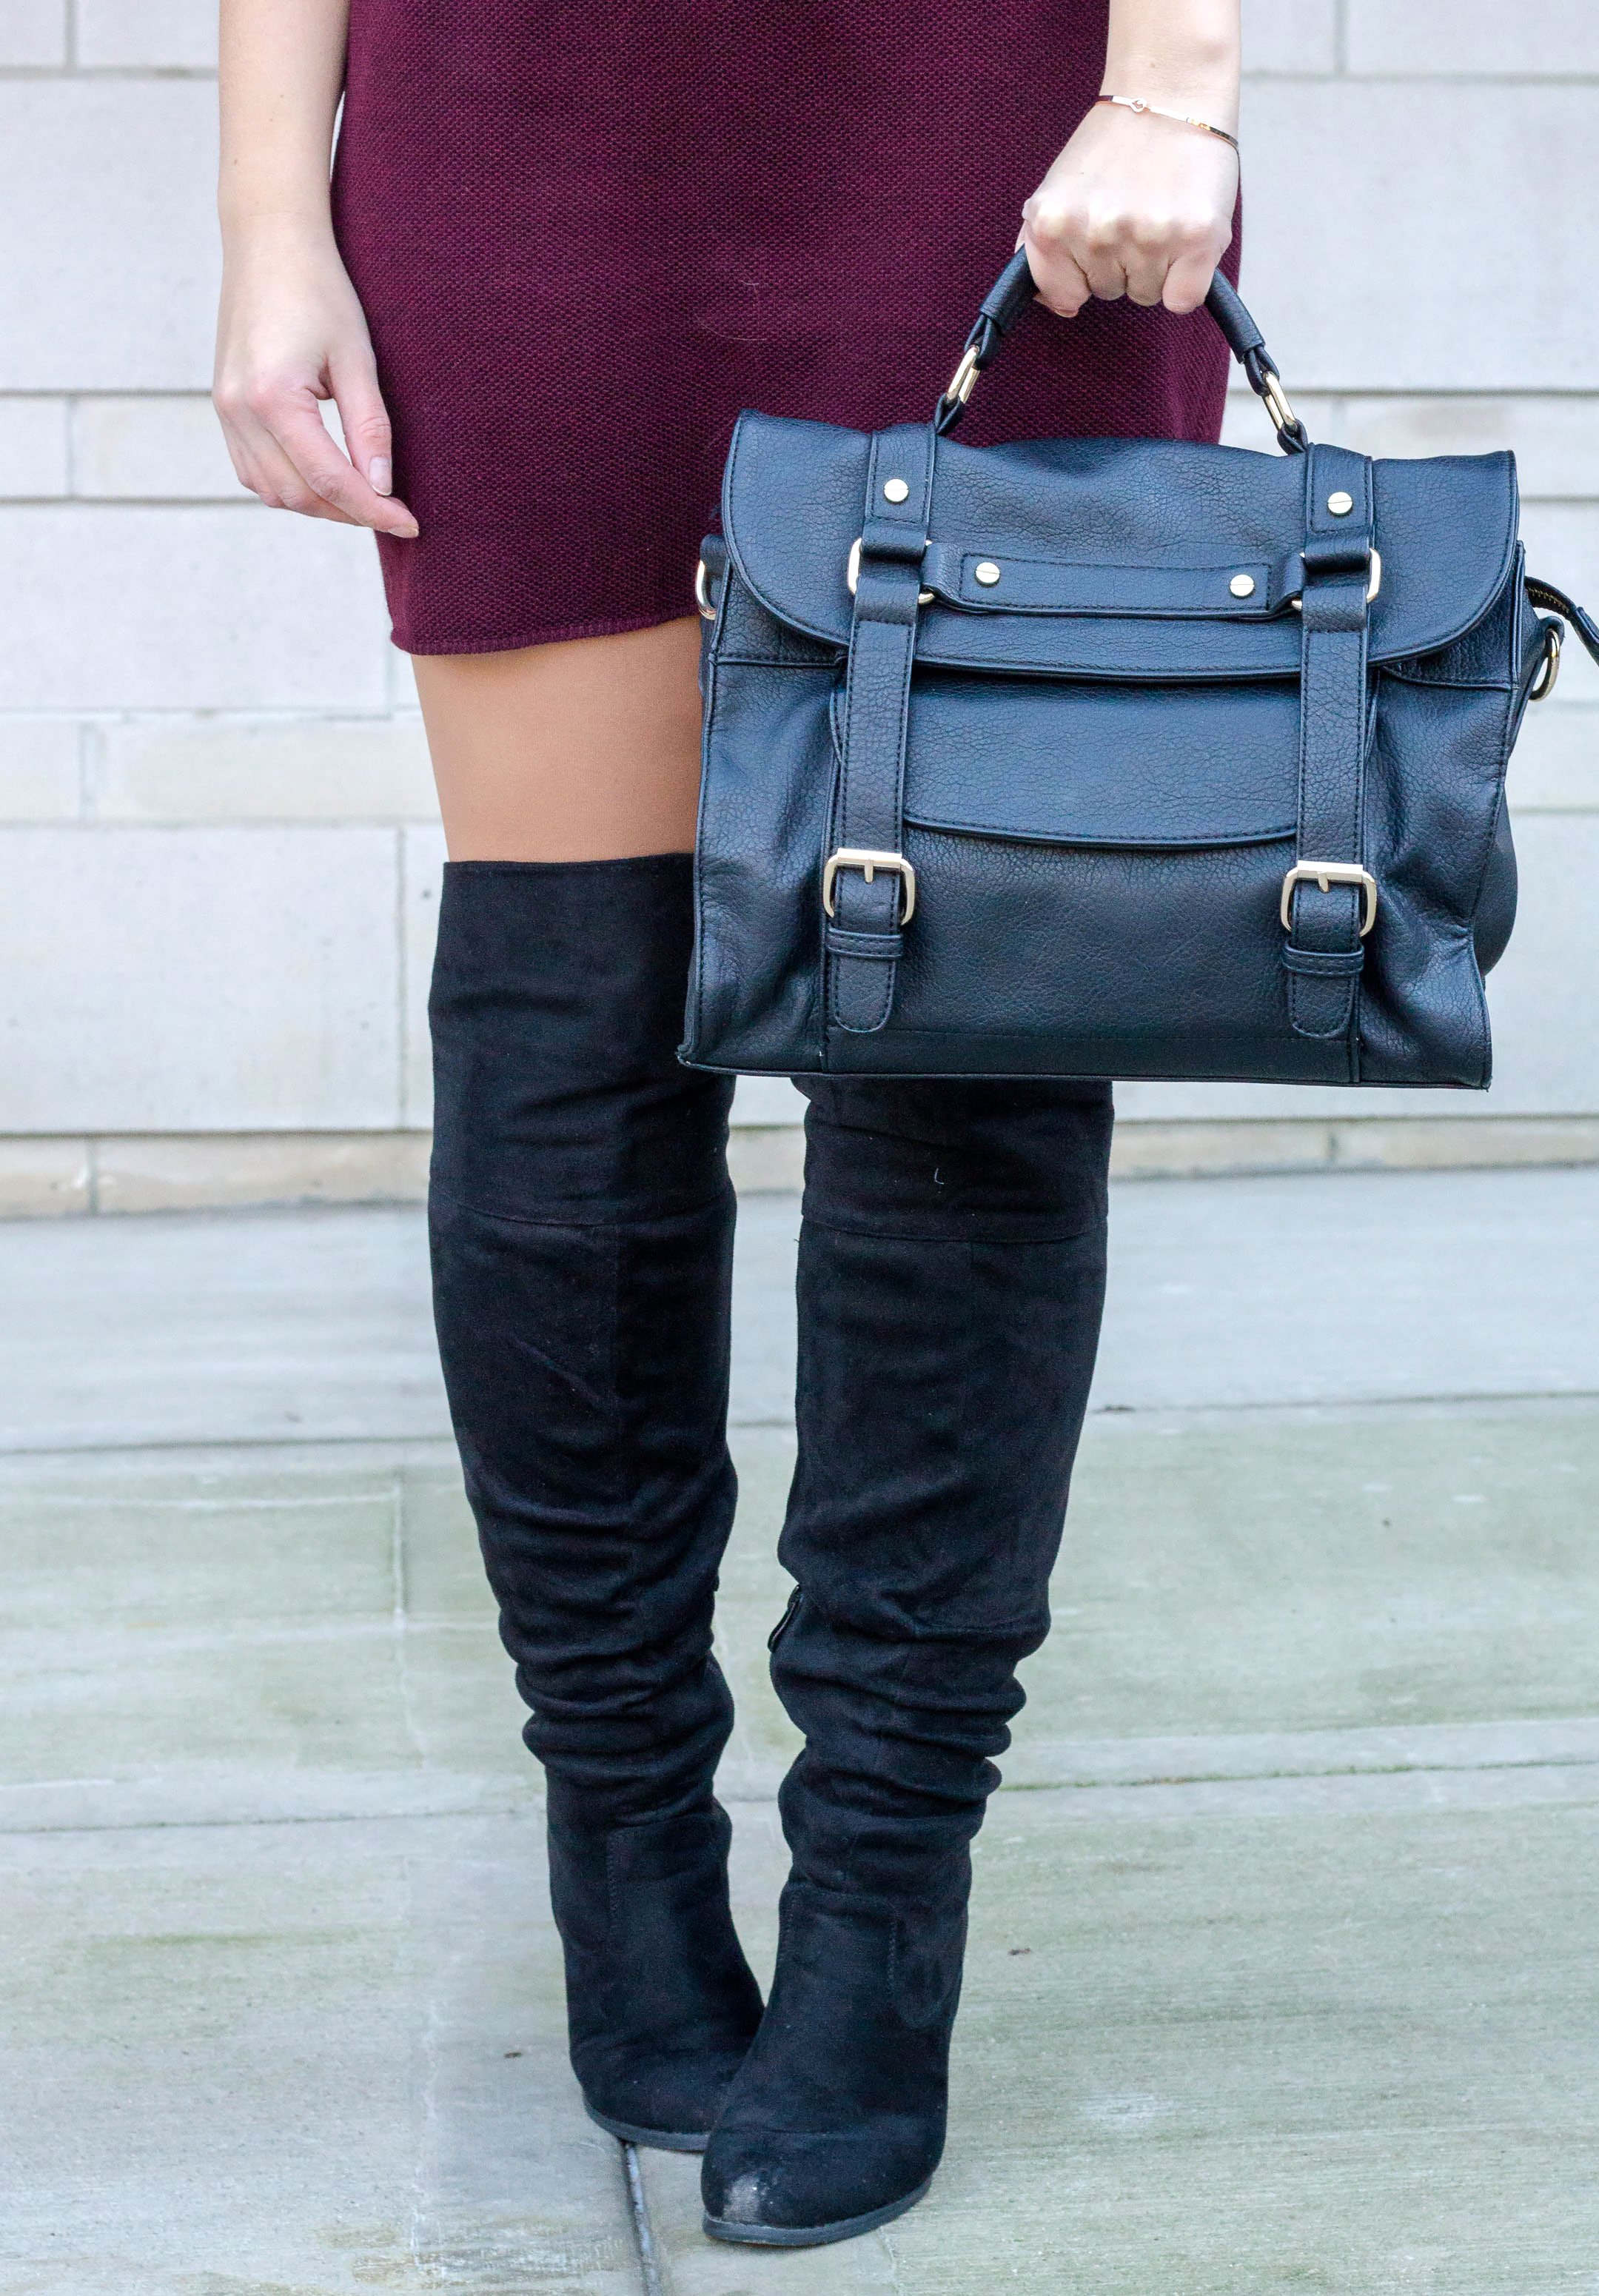 Journee Collection Knee High Boots and Sole Society Handbag